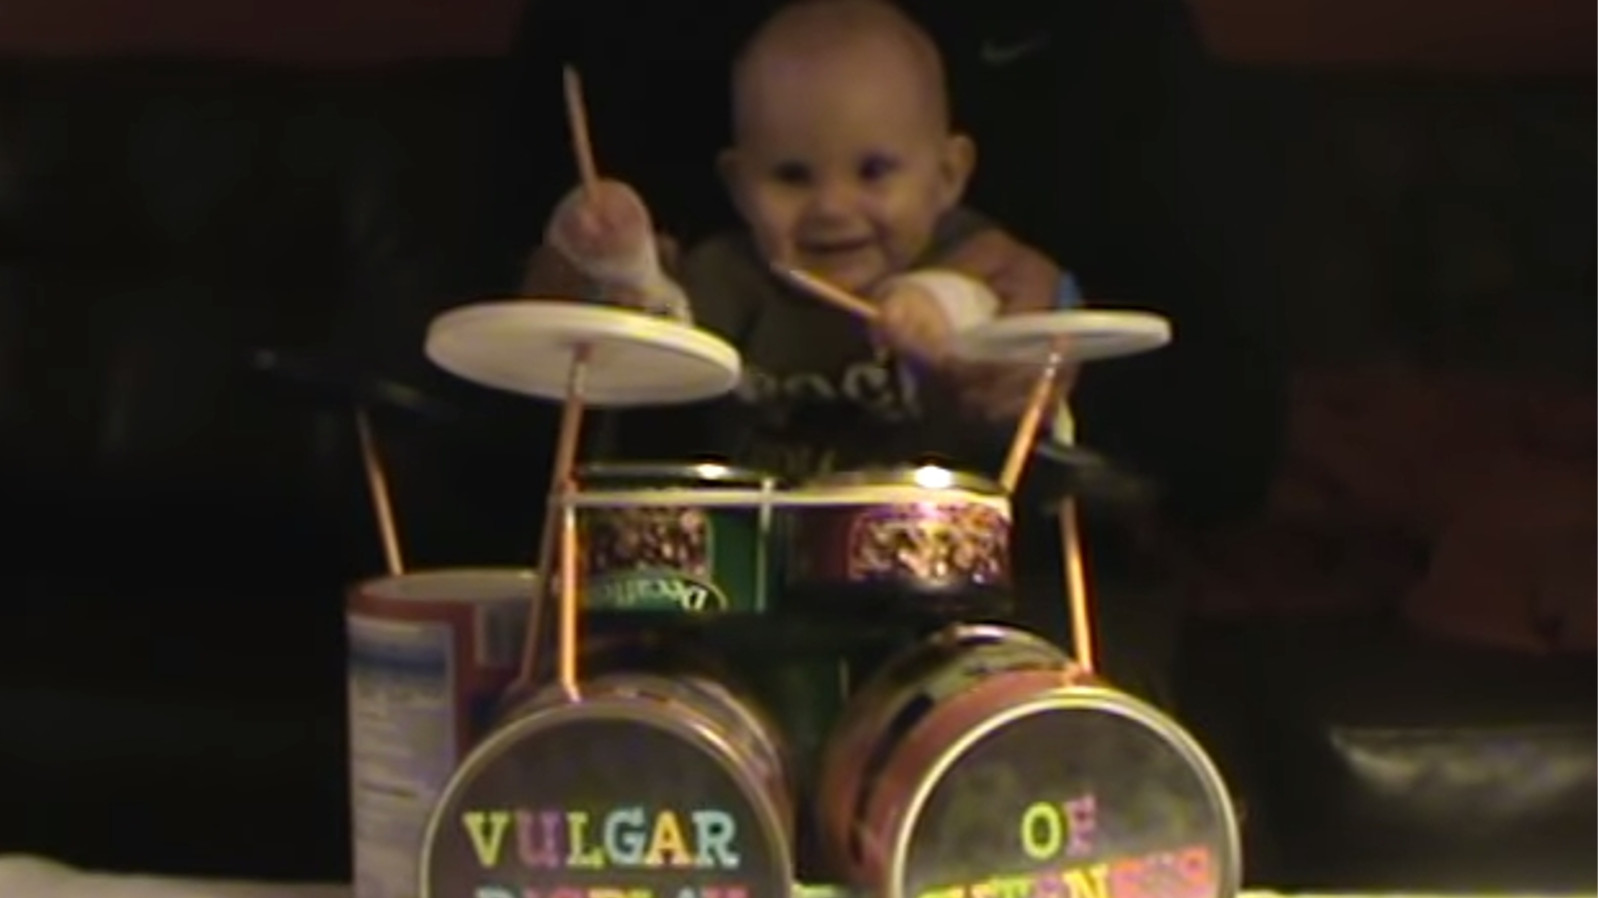 Vulgar-display-of-cuteness